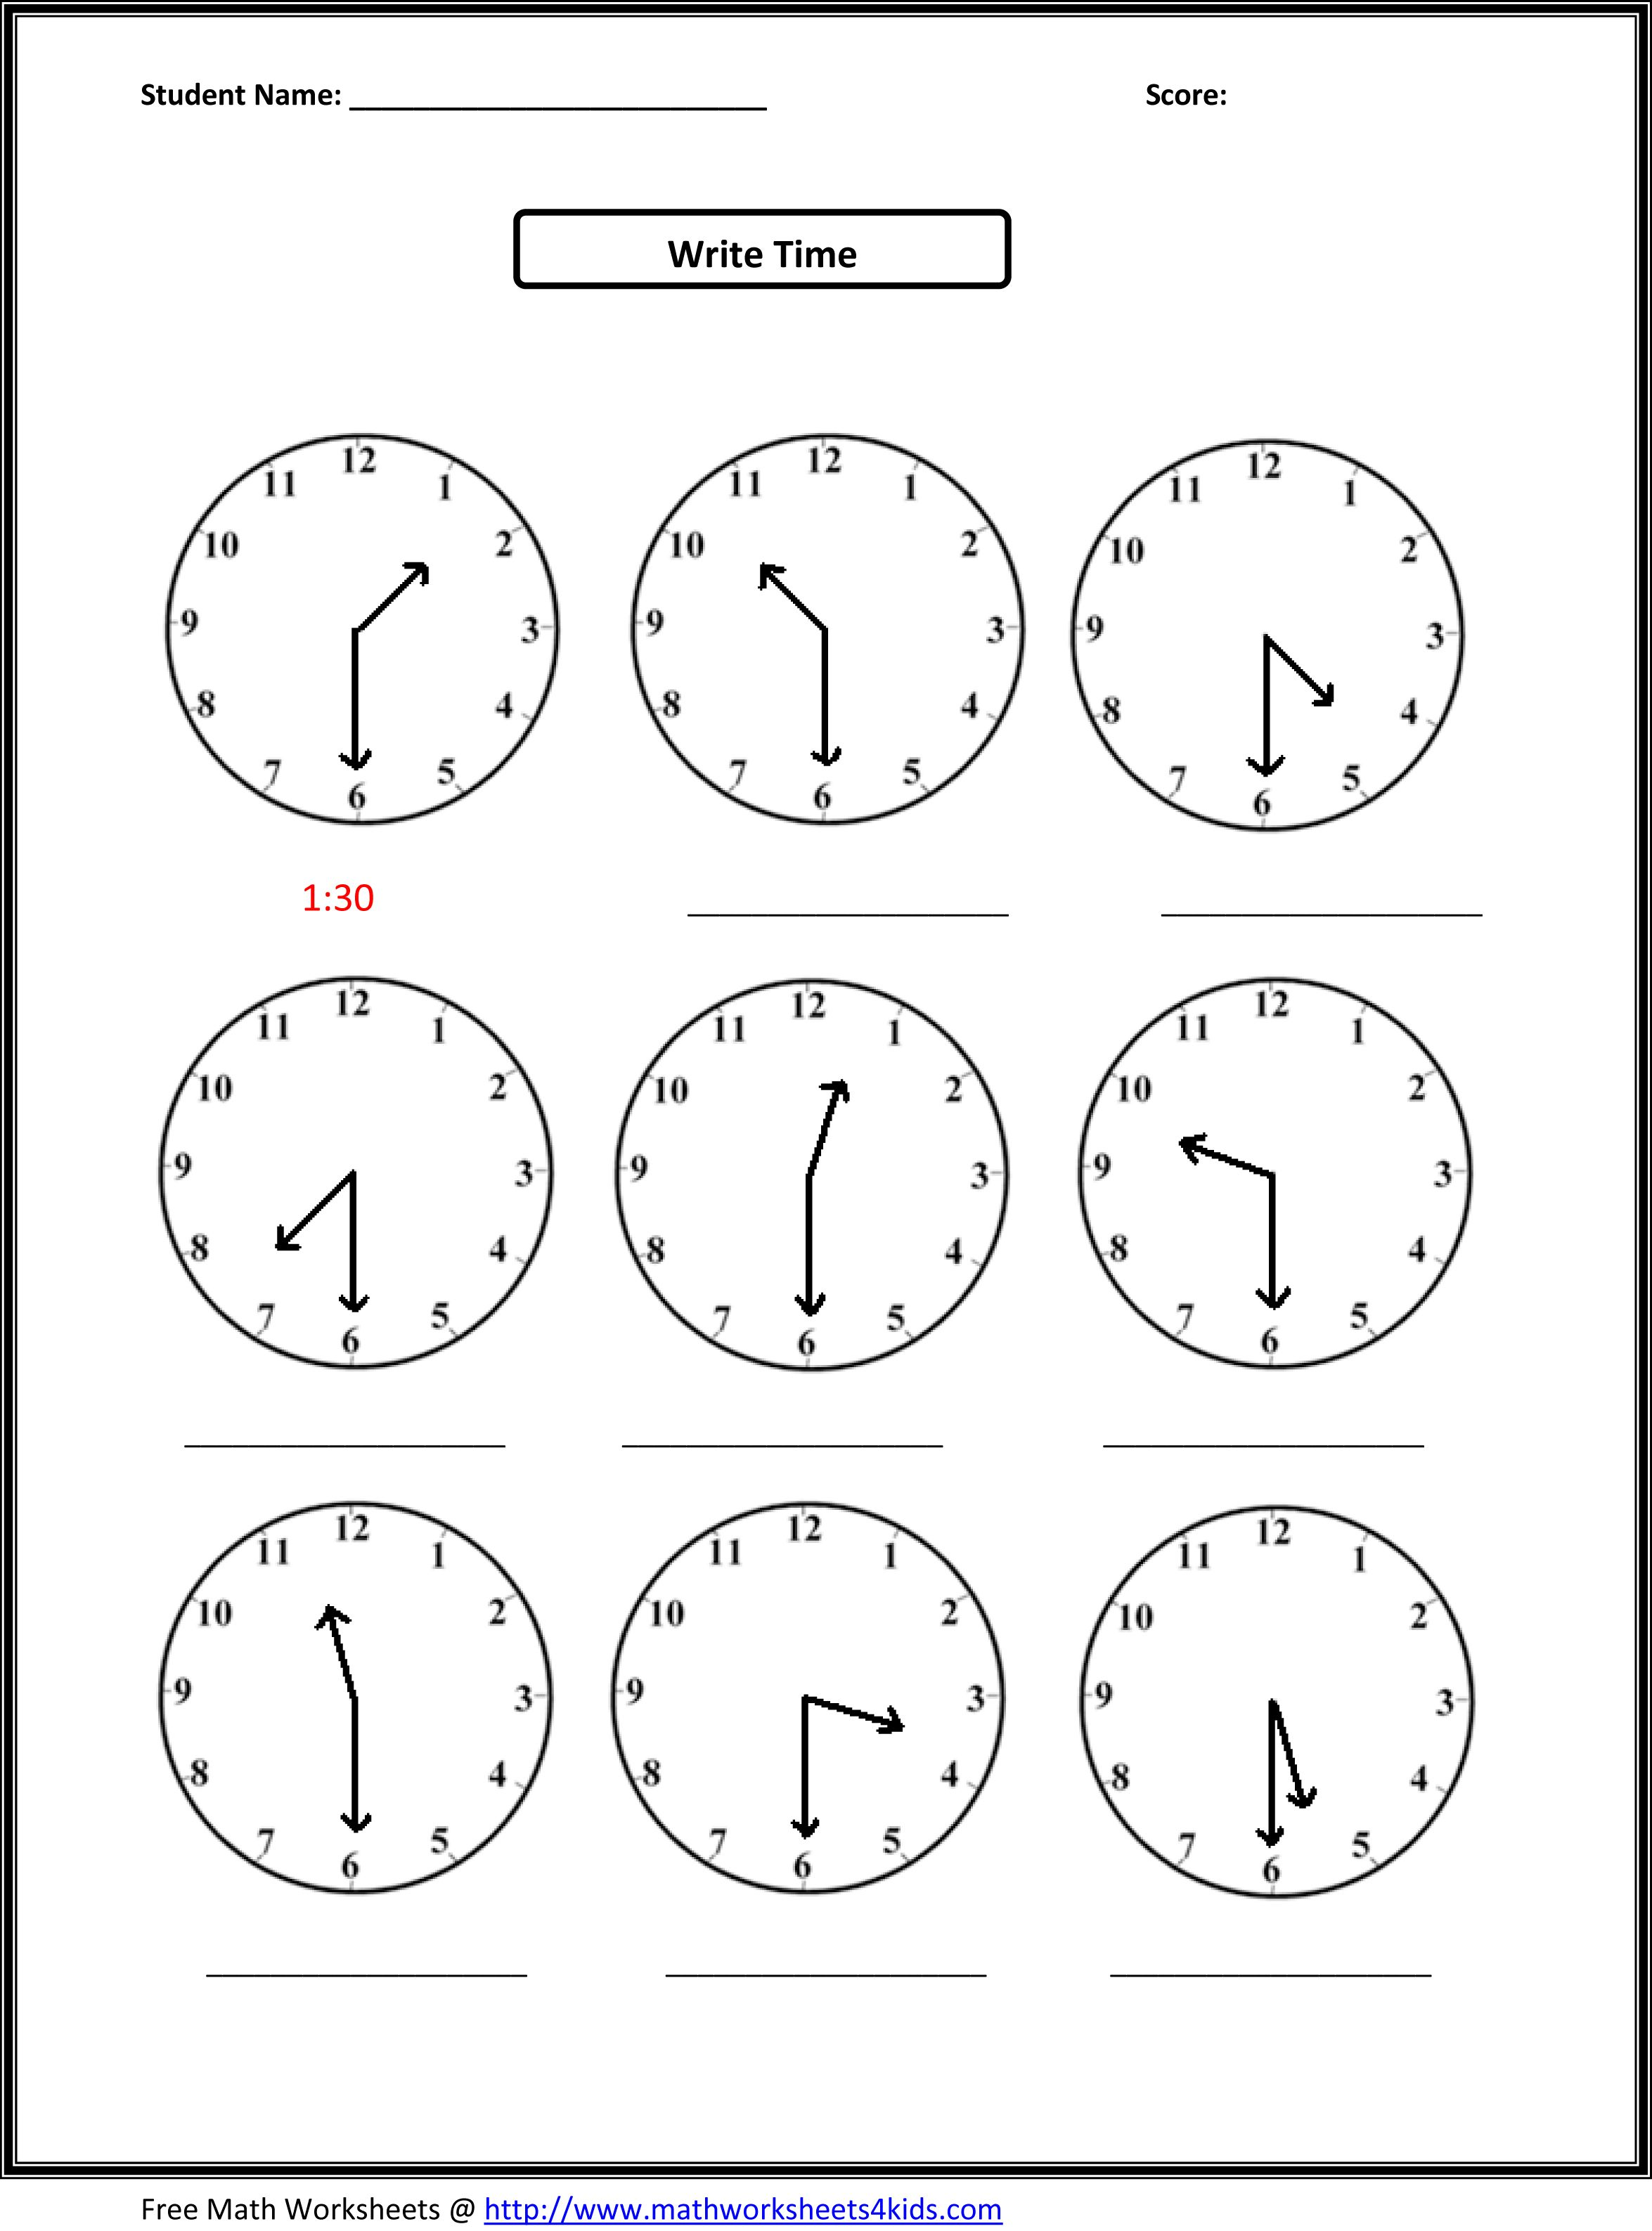 Proatmealus  Remarkable Worksheet On Time For Grade   Reocurent With Lovely Free Printable Telling Time Worksheets Nd Grade  Reocurent With Charming Adverb Worksheet For Grade  Also Preschool Learning Worksheets Free In Addition English Grammar Worksheet For Class  And Graphing Worksheet Kindergarten As Well As Inside A Mosque Worksheet Additionally Generate Maths Worksheets From Reocurentcom With Proatmealus  Lovely Worksheet On Time For Grade   Reocurent With Charming Free Printable Telling Time Worksheets Nd Grade  Reocurent And Remarkable Adverb Worksheet For Grade  Also Preschool Learning Worksheets Free In Addition English Grammar Worksheet For Class  From Reocurentcom